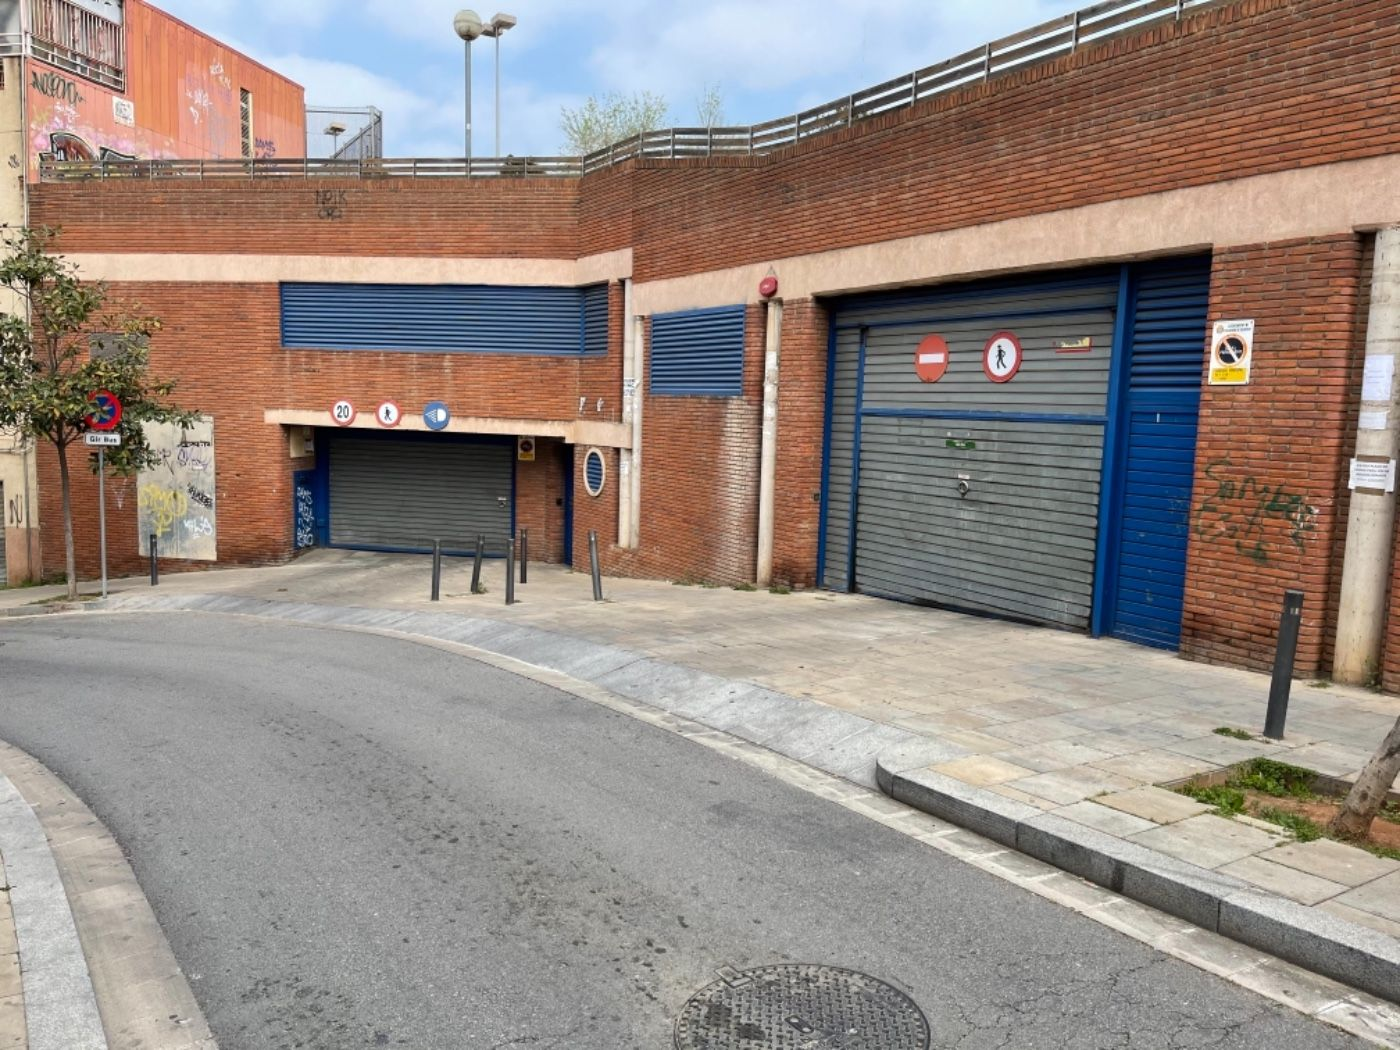 Posto auto  Carrer sant jordi. Ultimas 4 plazas de parking